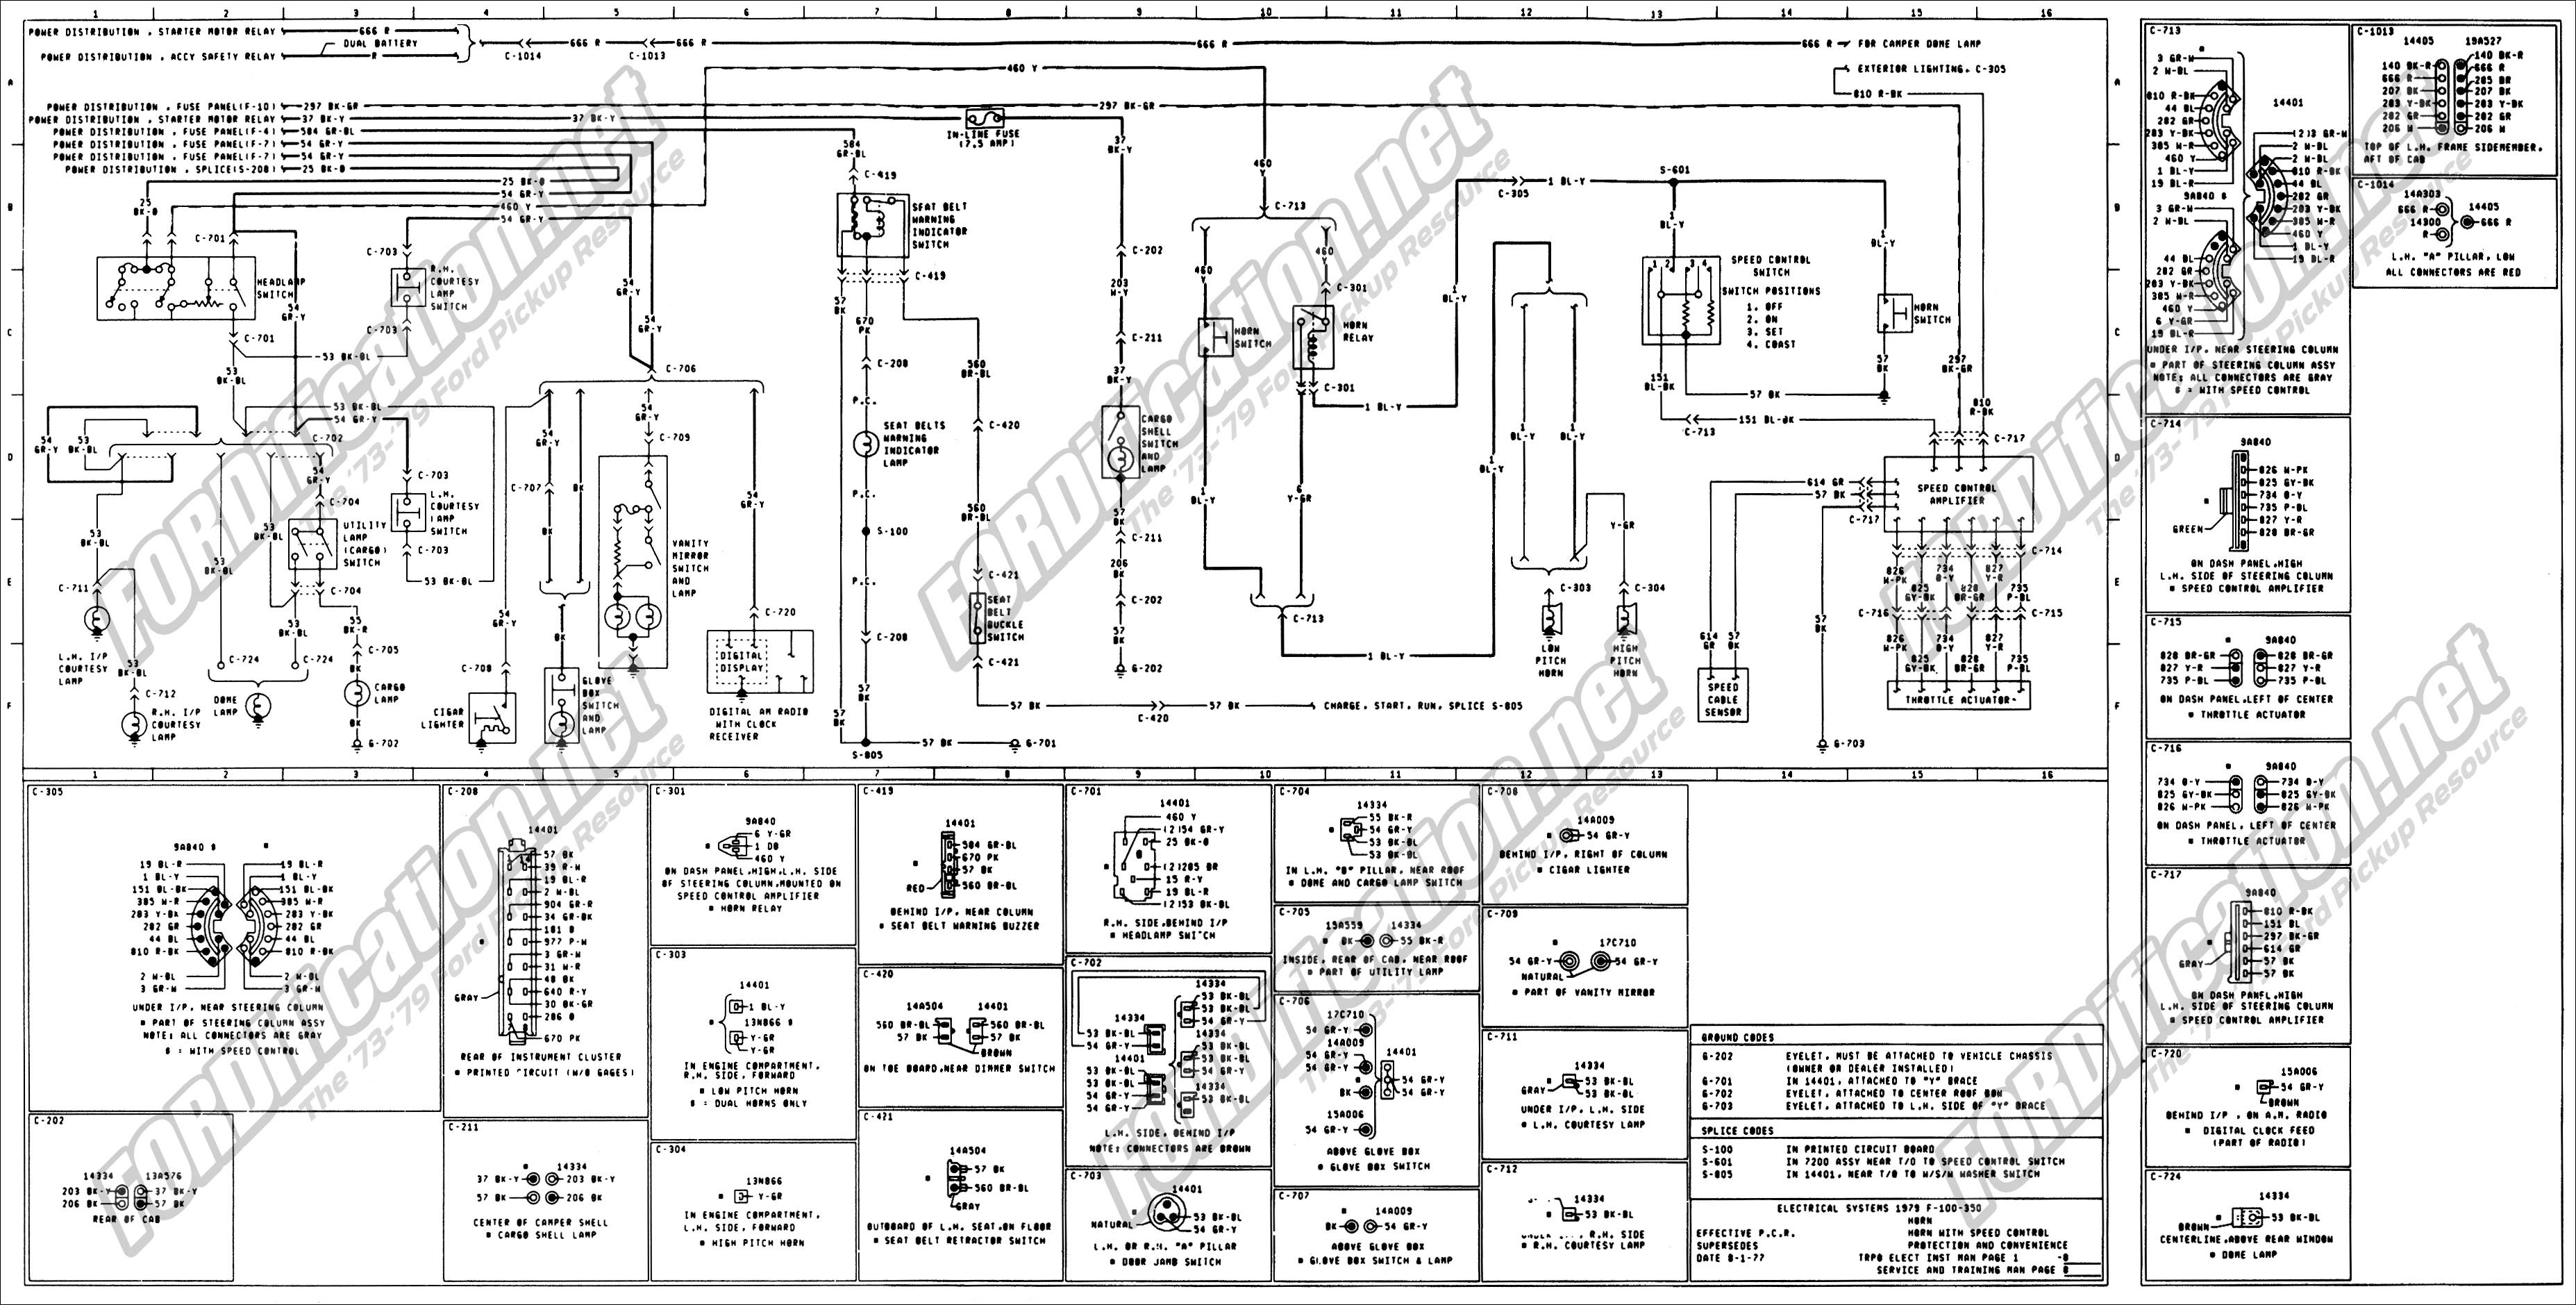 9709B 1996 Ford F700 Fuel Pump Wiring Schematic | #Digital ... on 1996 clutch diagram, 1996 relay diagram, 1996 assembly diagram, 1996 fuse diagram, 1996 computer diagram, 1996 thermostat diagram,